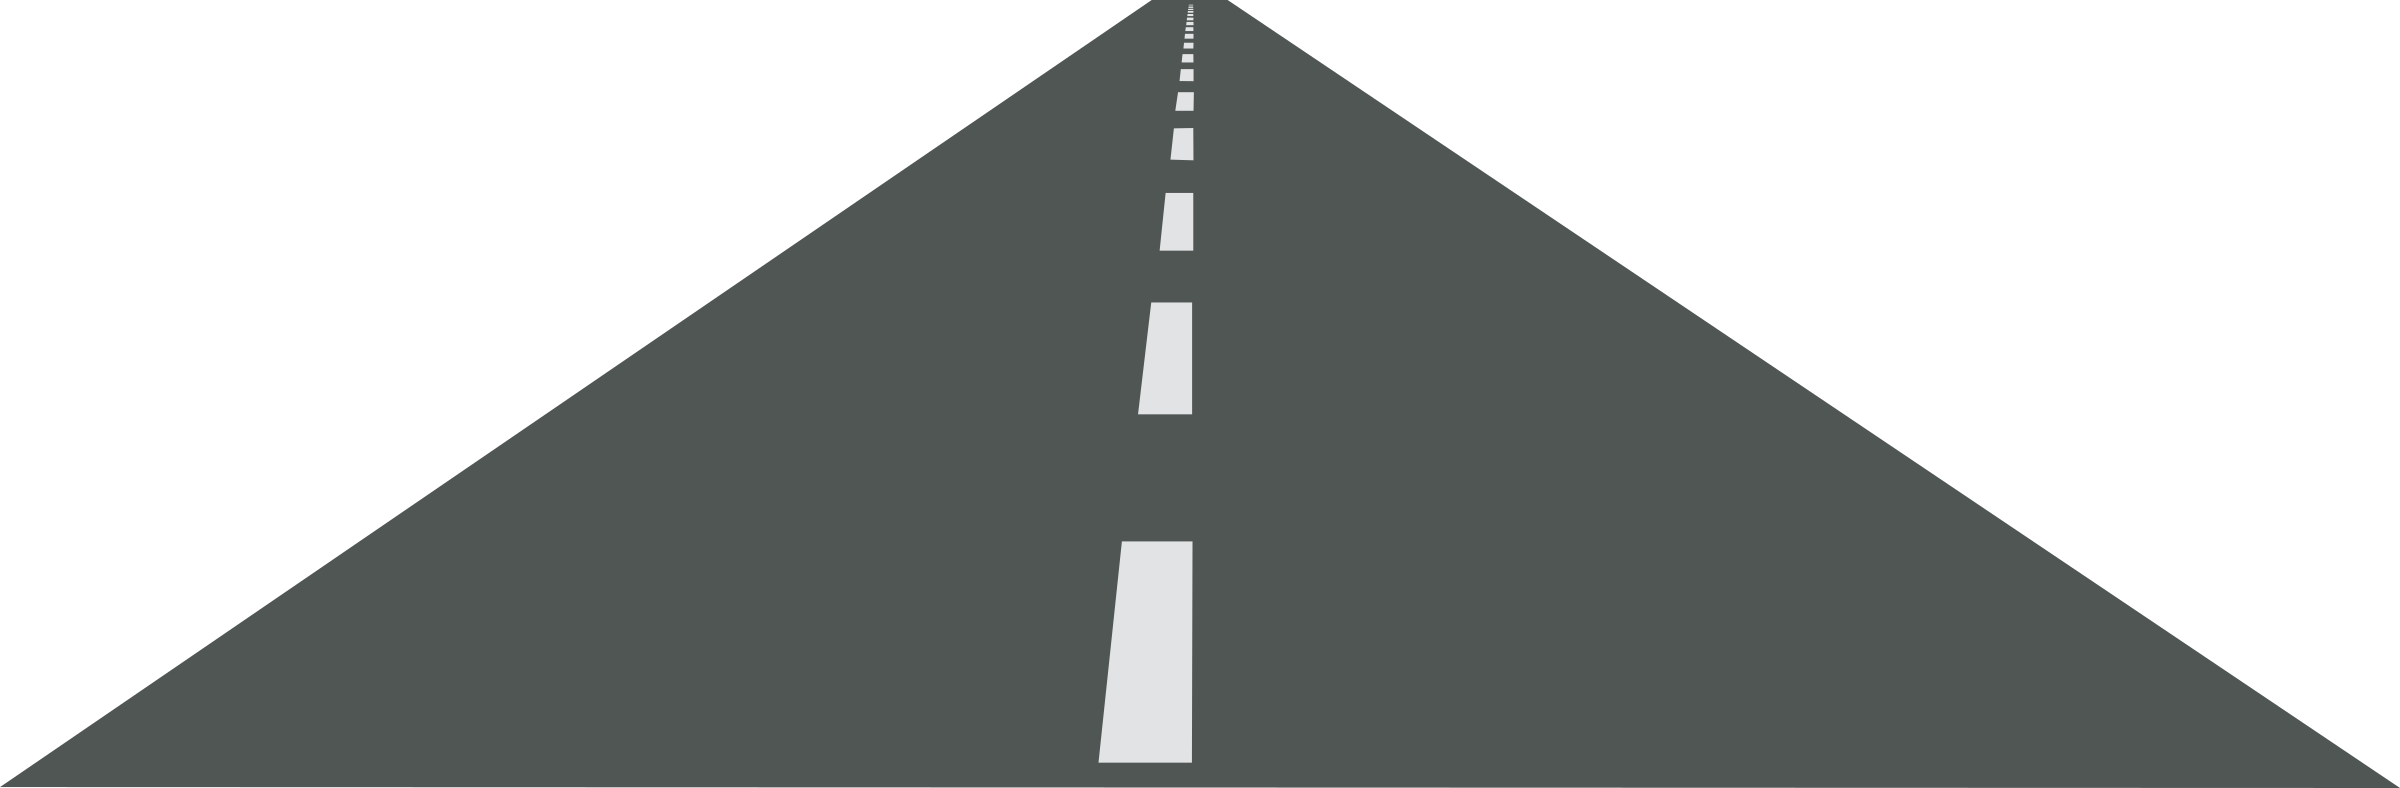 Clipart - Open road